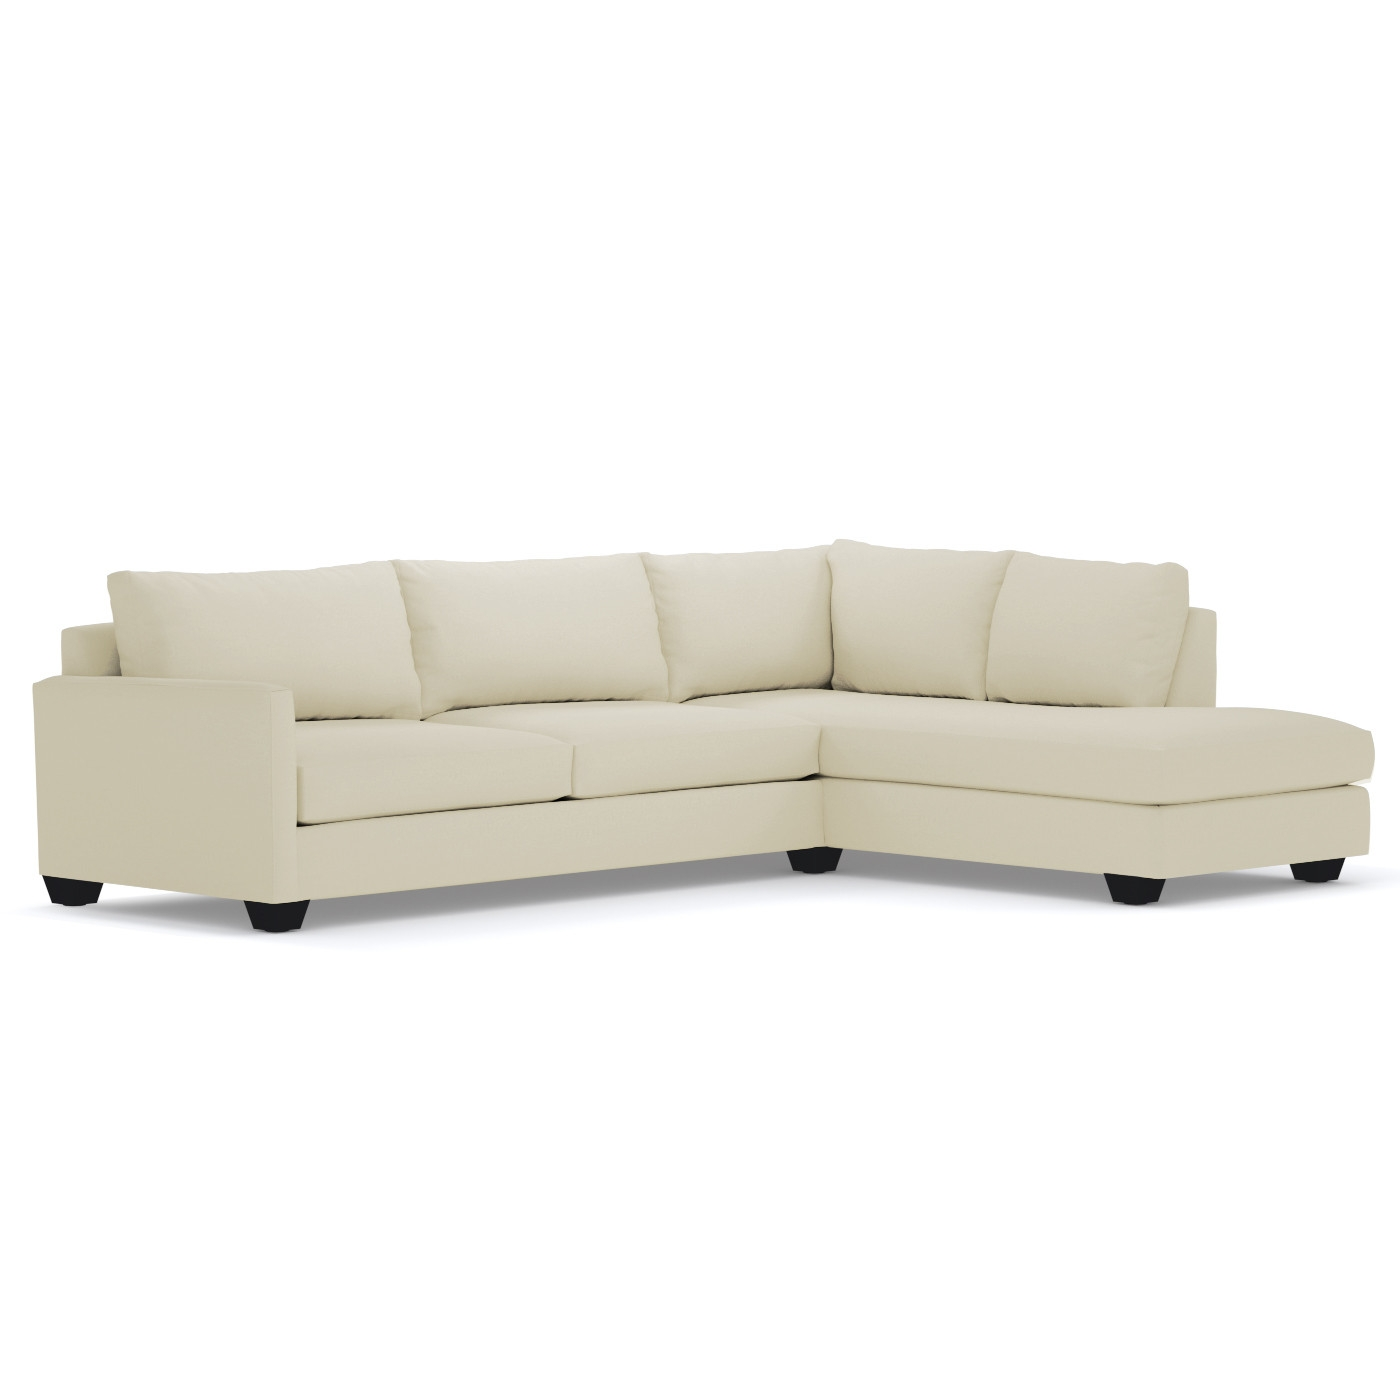 Tuxedo Sectional Sofa Hotelsbacau Within Albany Industries Sectional Sofa (Image 15 of 15)